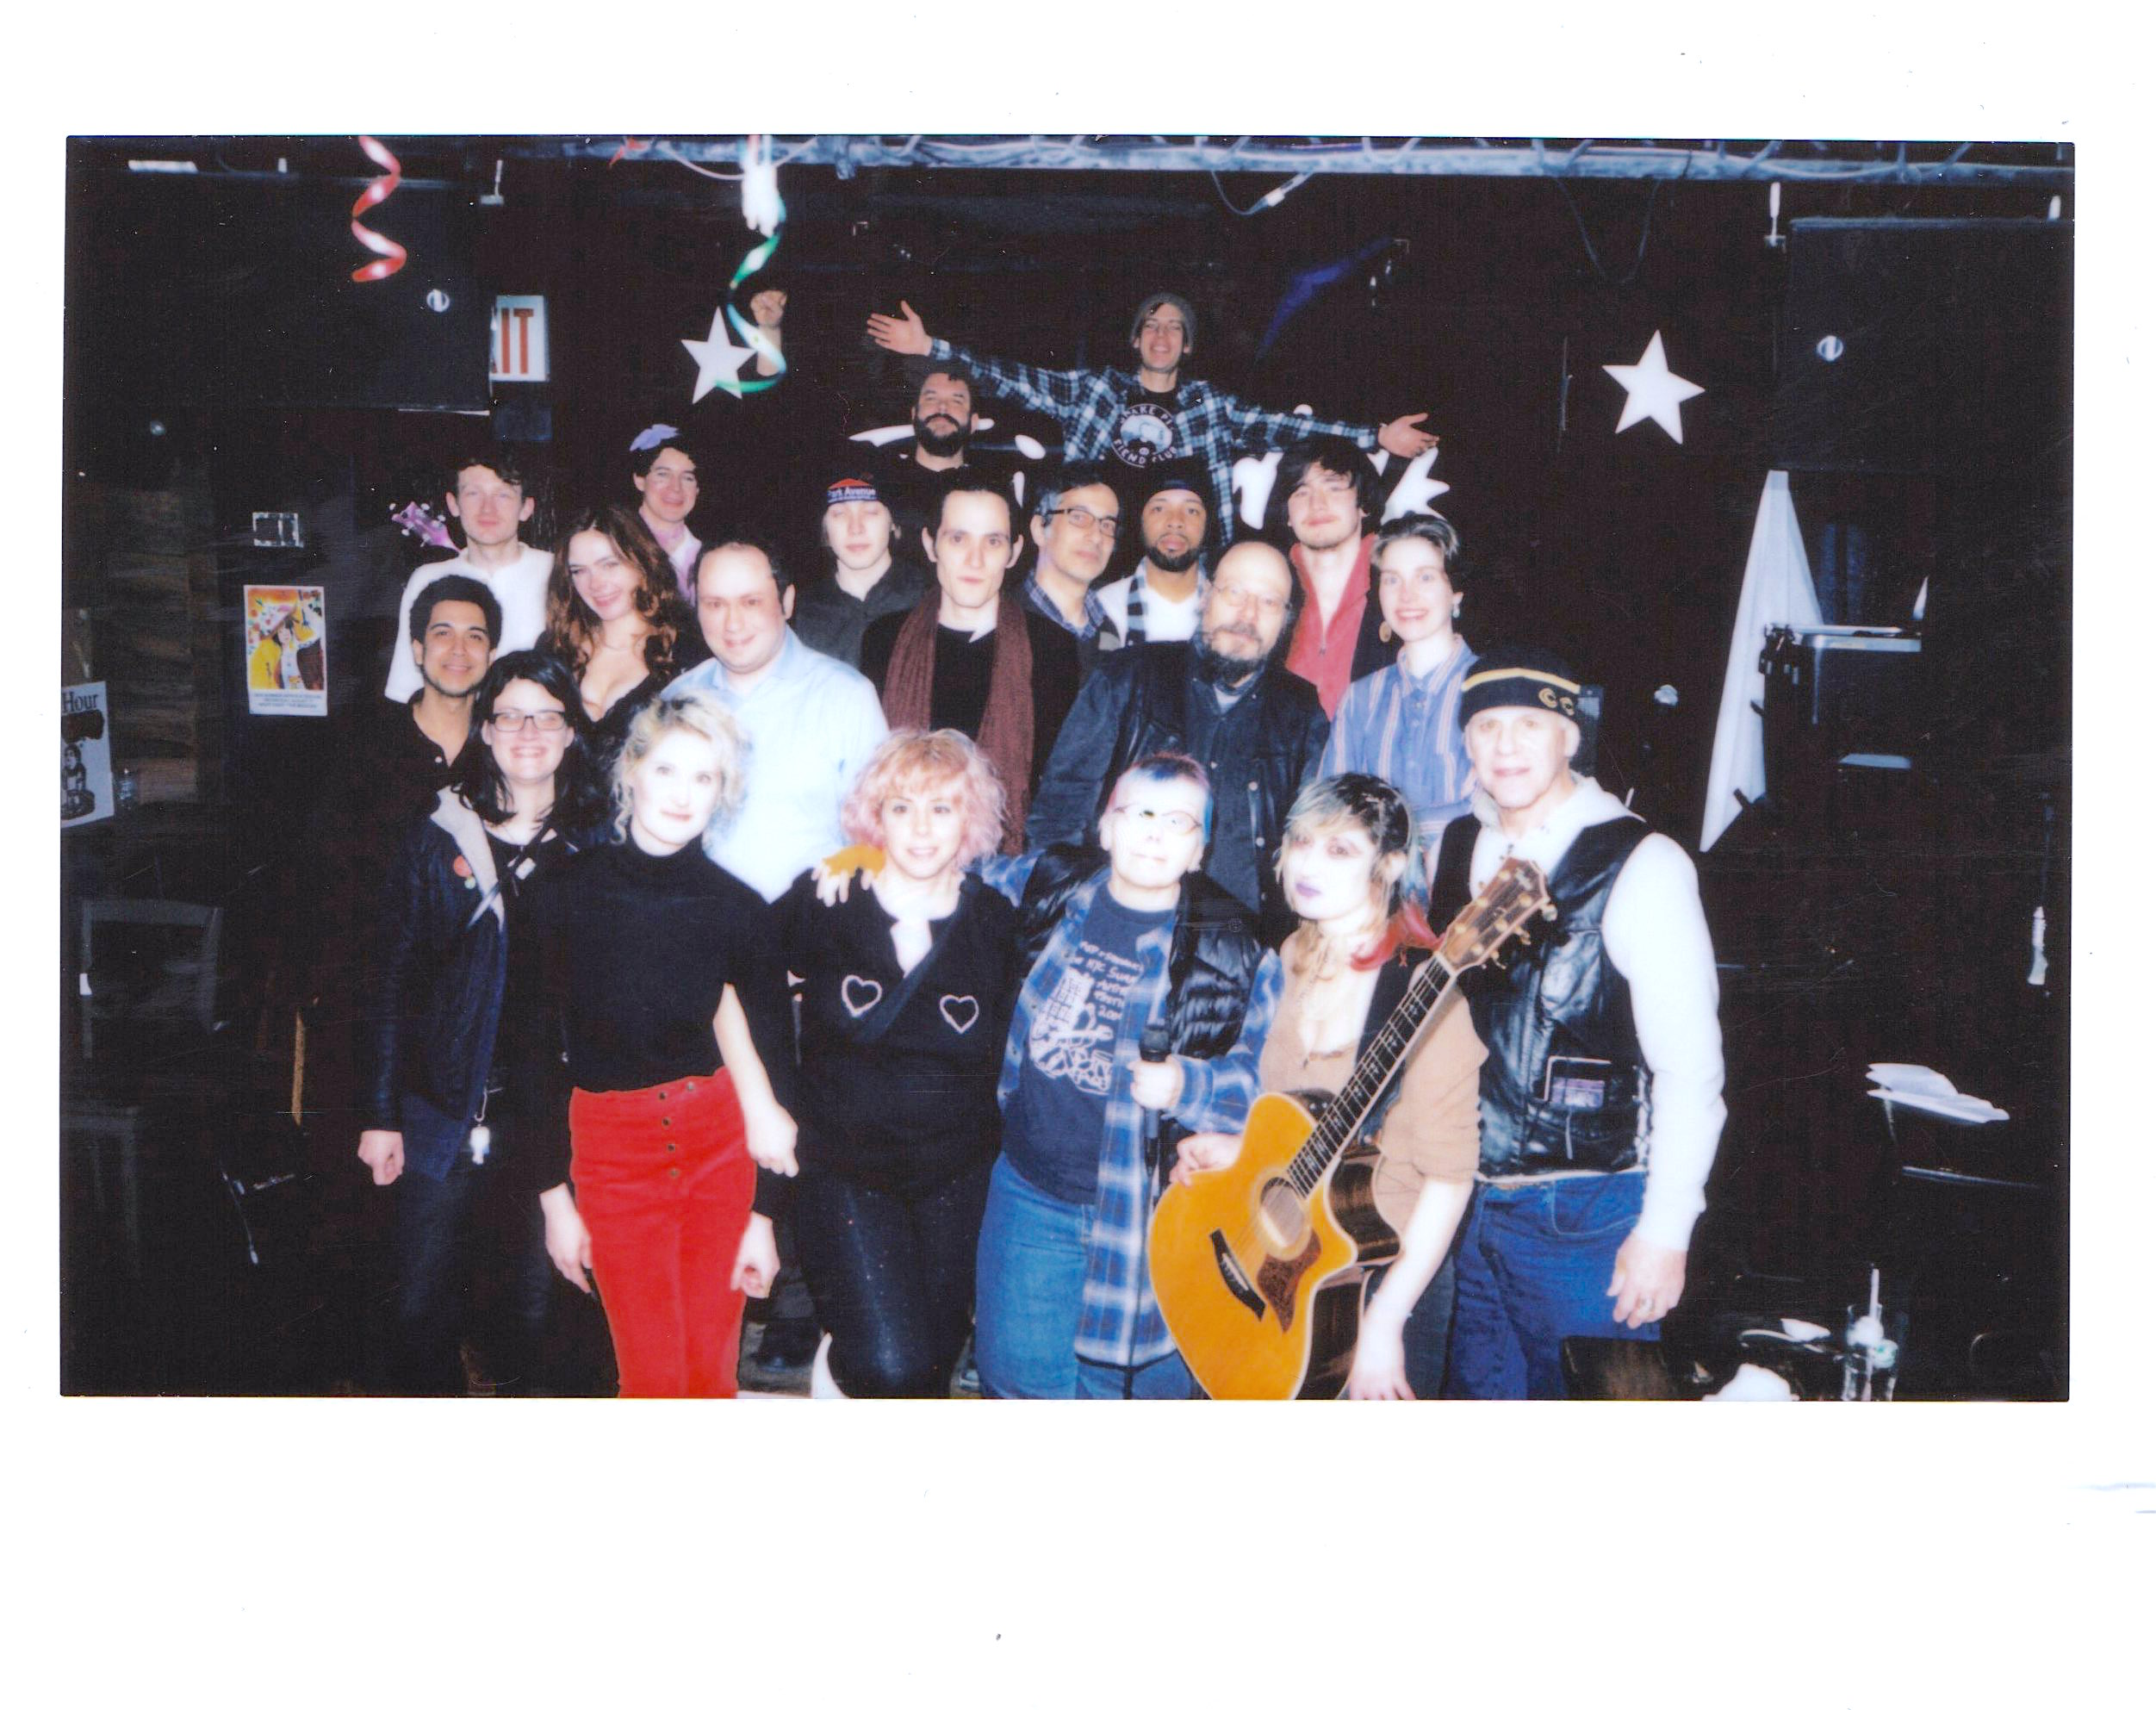 Phoebe Novak with her fellow performers and audience after her set at the Winter Antifolk Fest, 2/13/19 at 11pm.